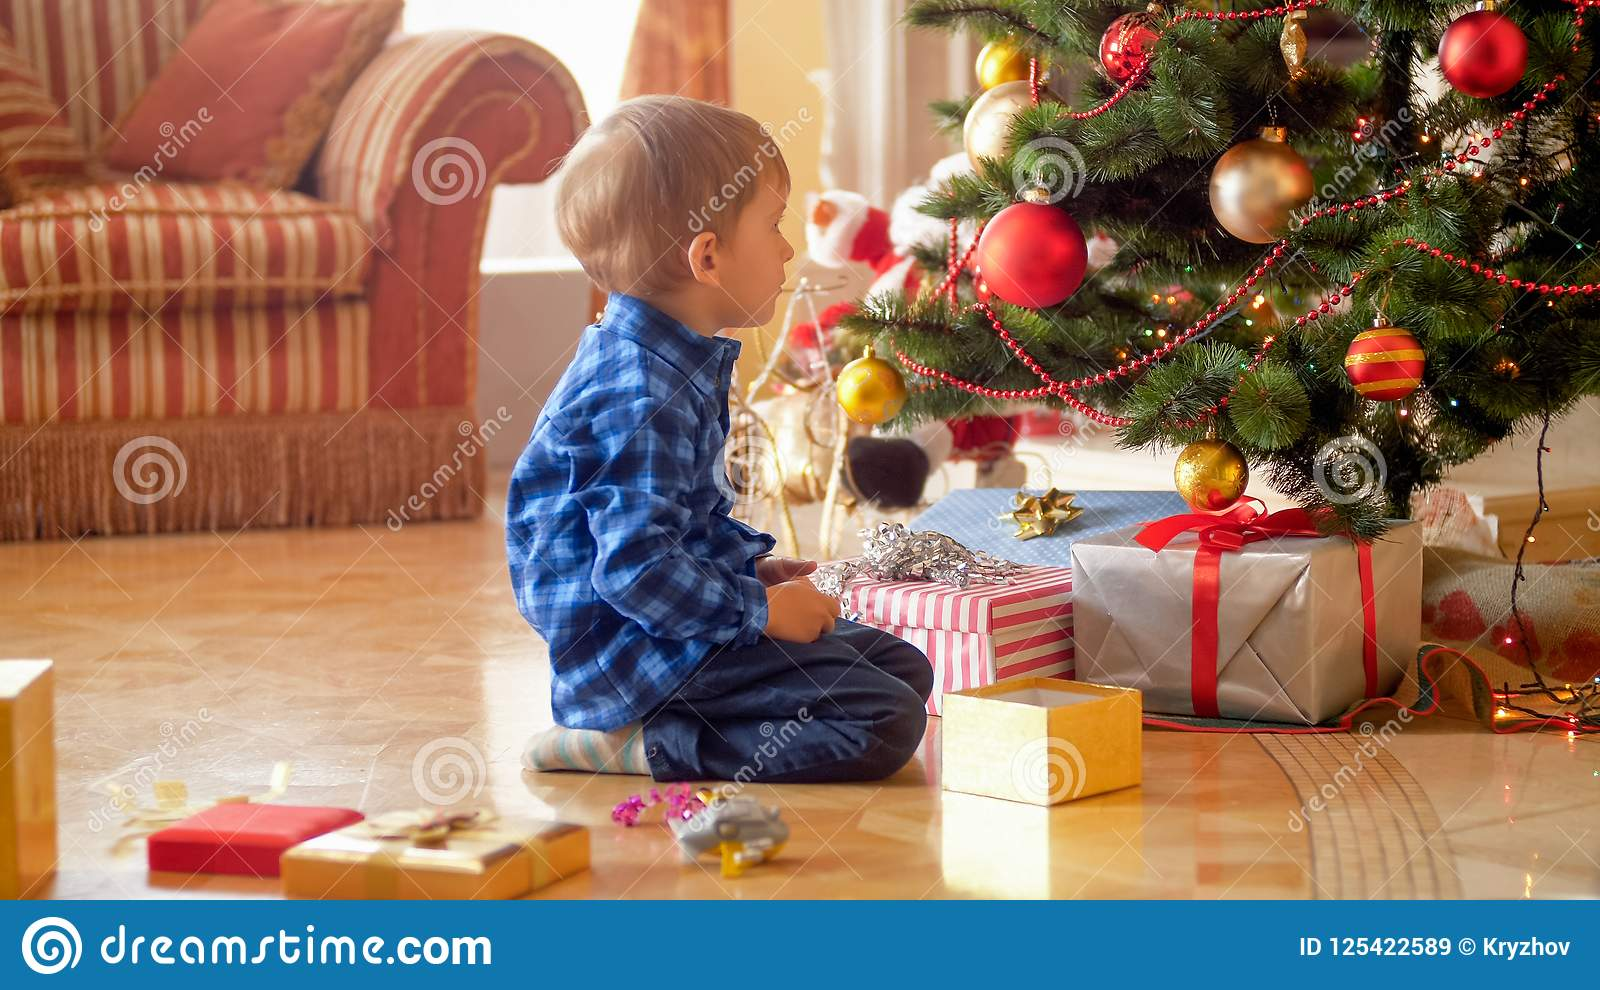 3 Years Old Little Boy Sitting Under Christmas Tree And Looking On Gifts Presents